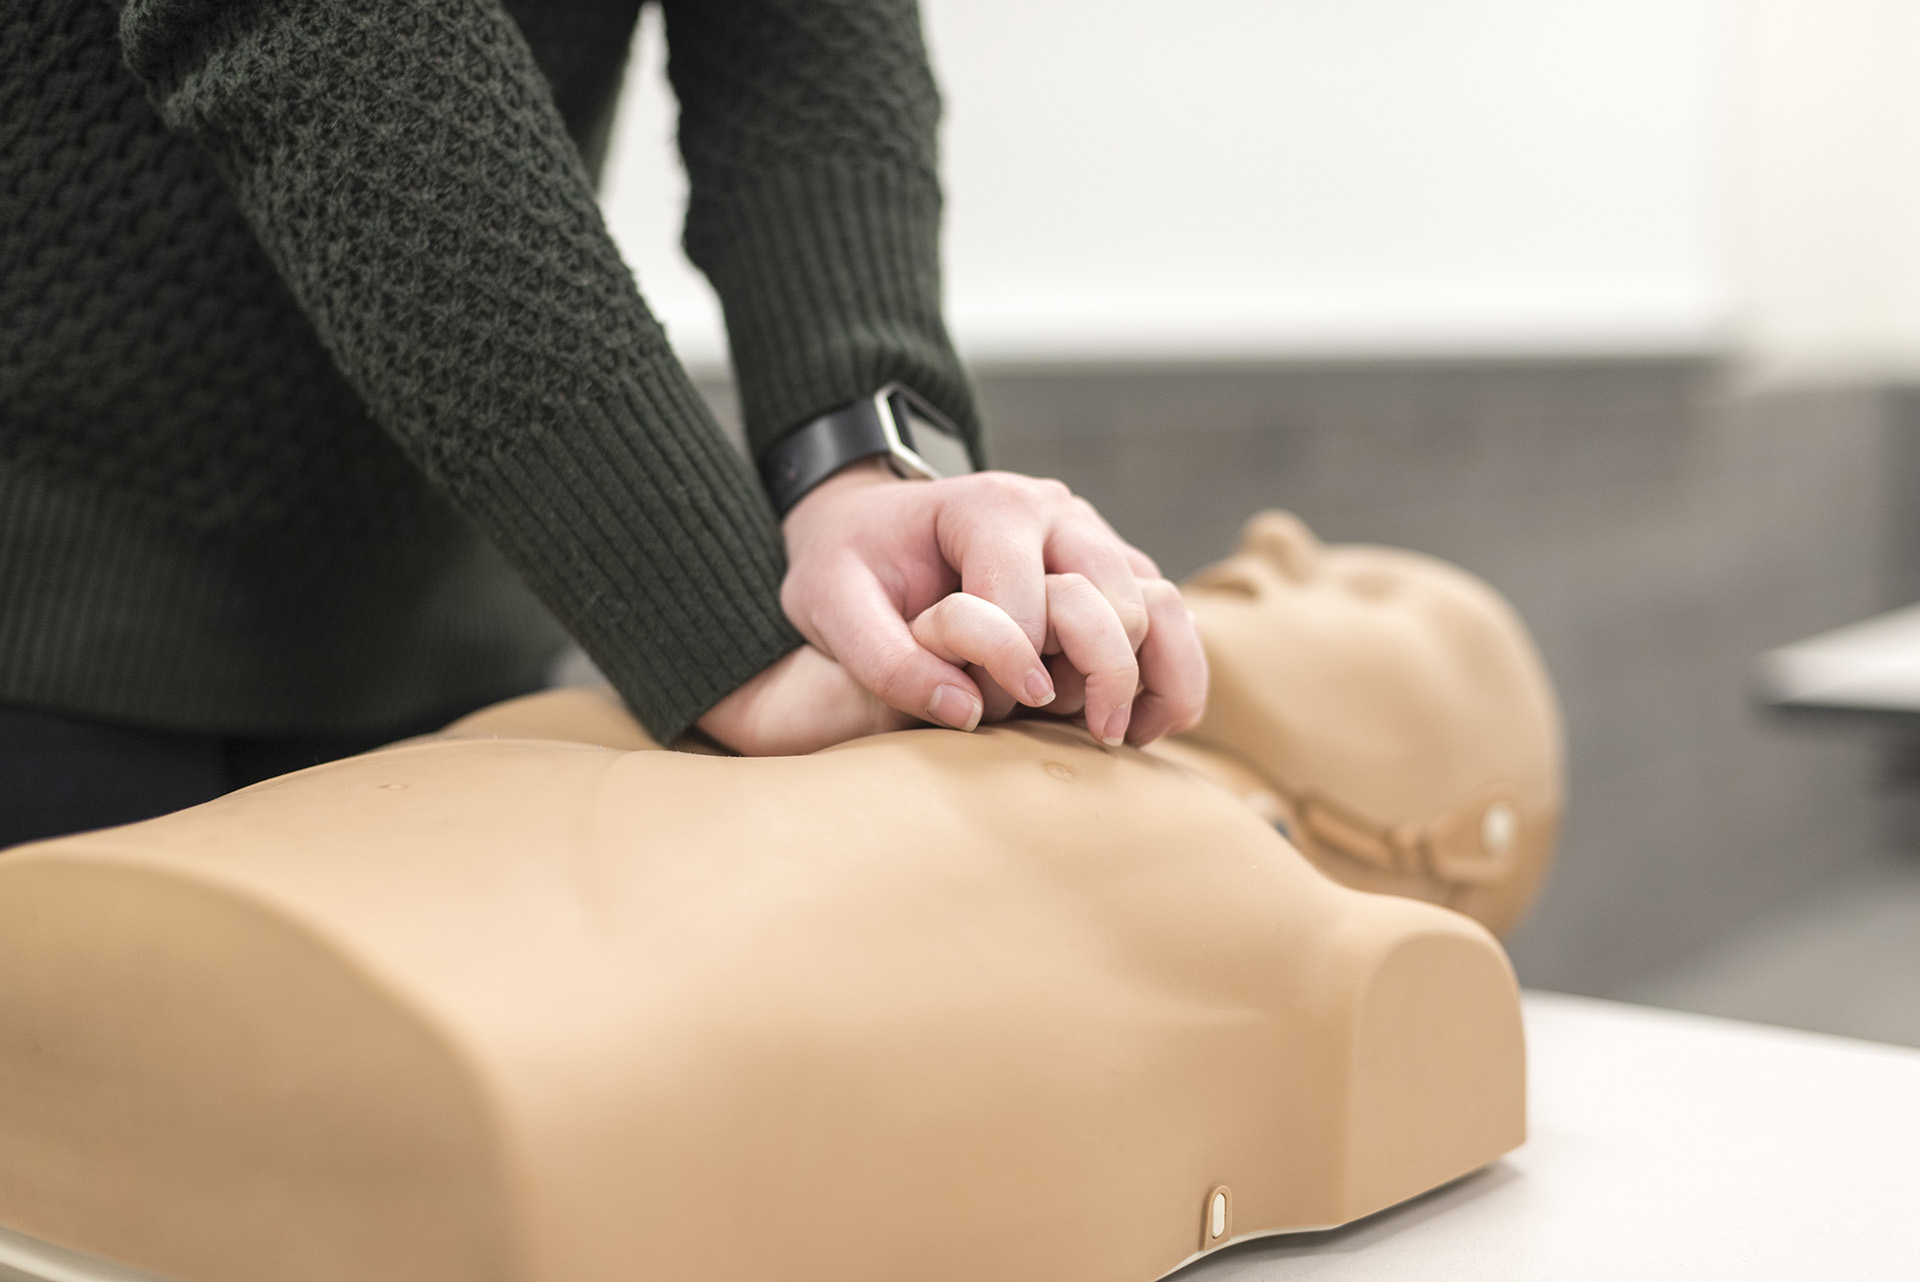 Student practicing on adult CPR manikin